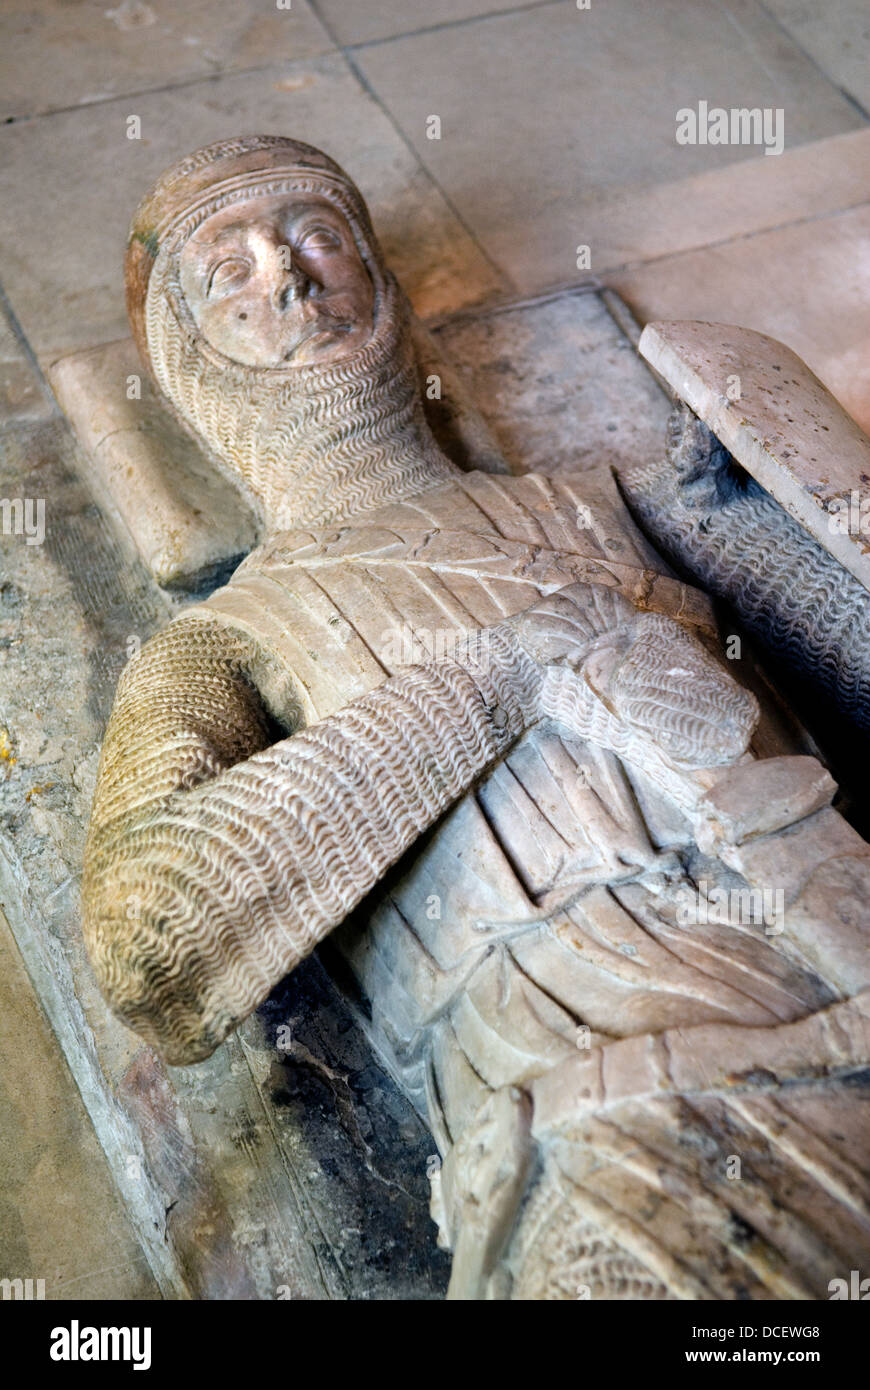 Knights effigy tomb Temple Church, Inns of Court London UK HOMER SYKES - Stock Image